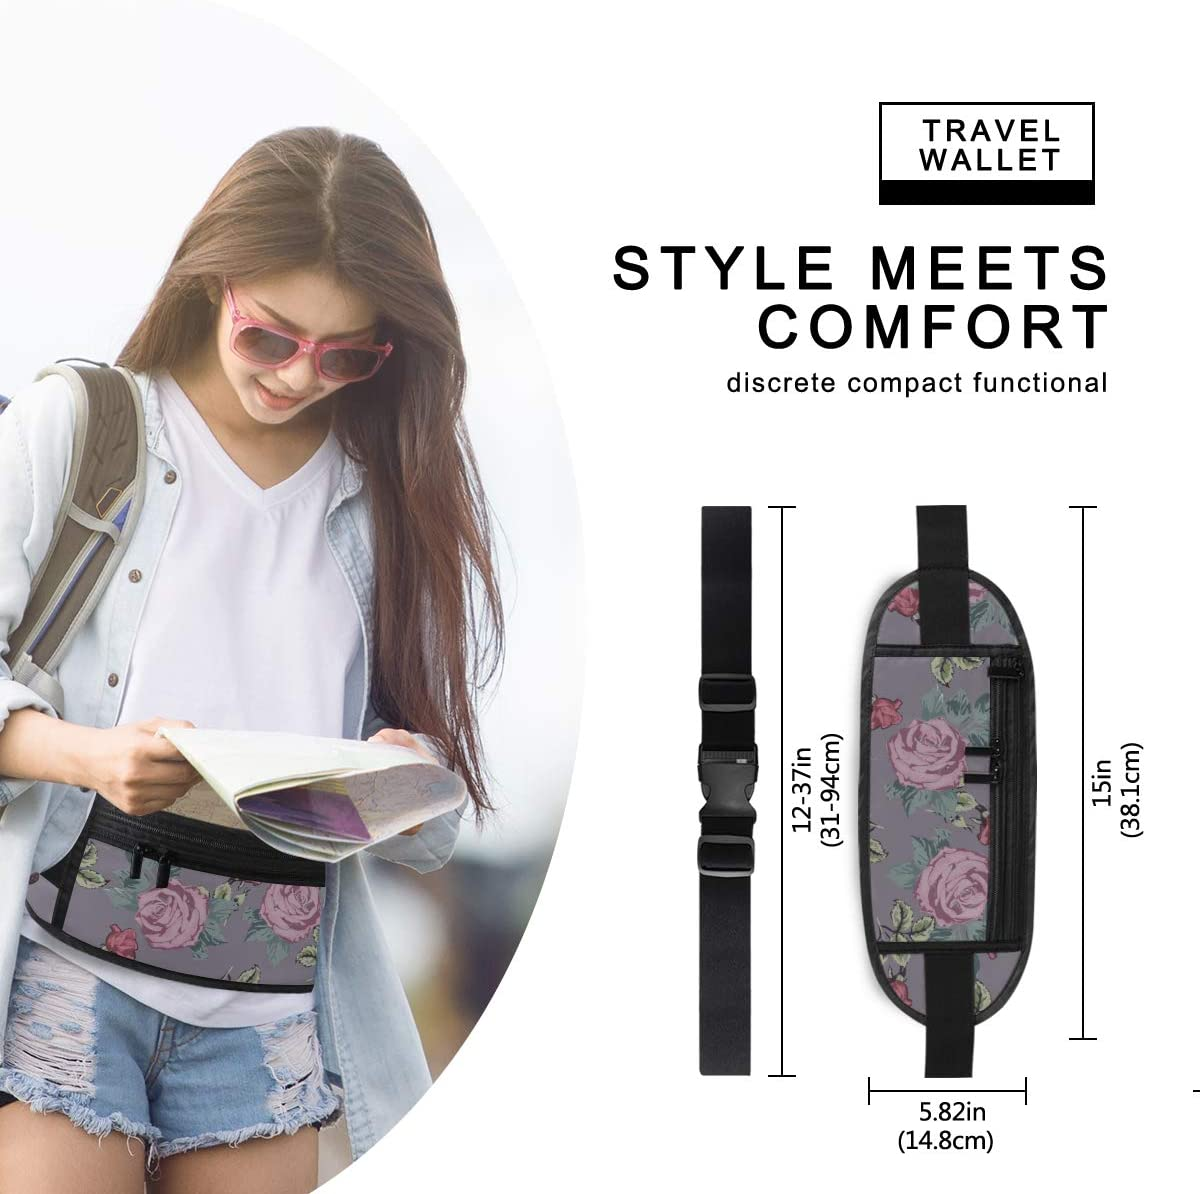 Pattern Pink Flowers Leaves Running Lumbar Pack For Travel Outdoor Sports Walking Travel Waist Pack,travel Pocket With Adjustable Belt